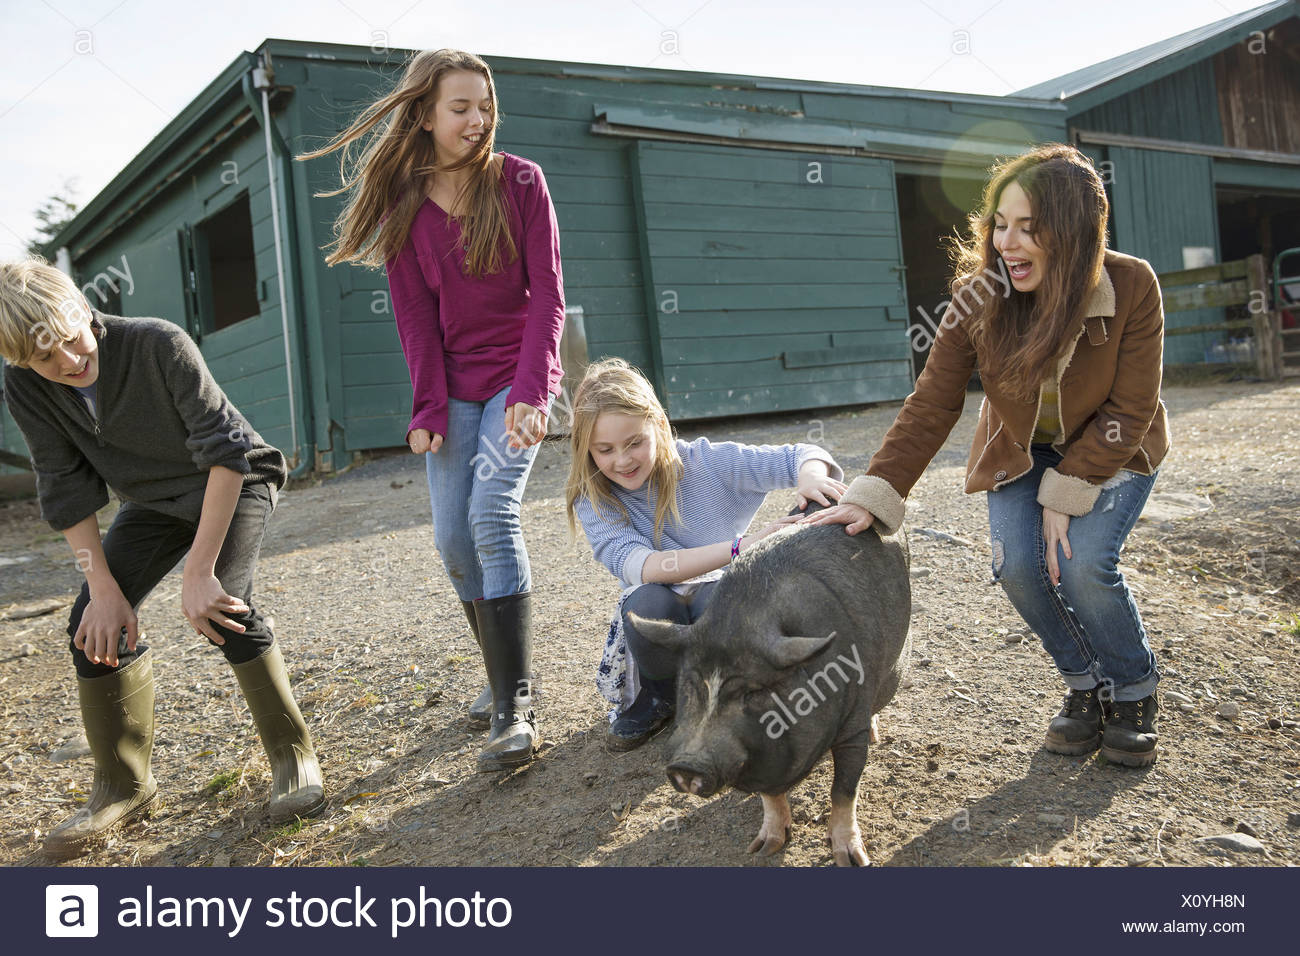 Three children and a young woman with a large pig in the pigpen at an animal sanctuary - Stock Image